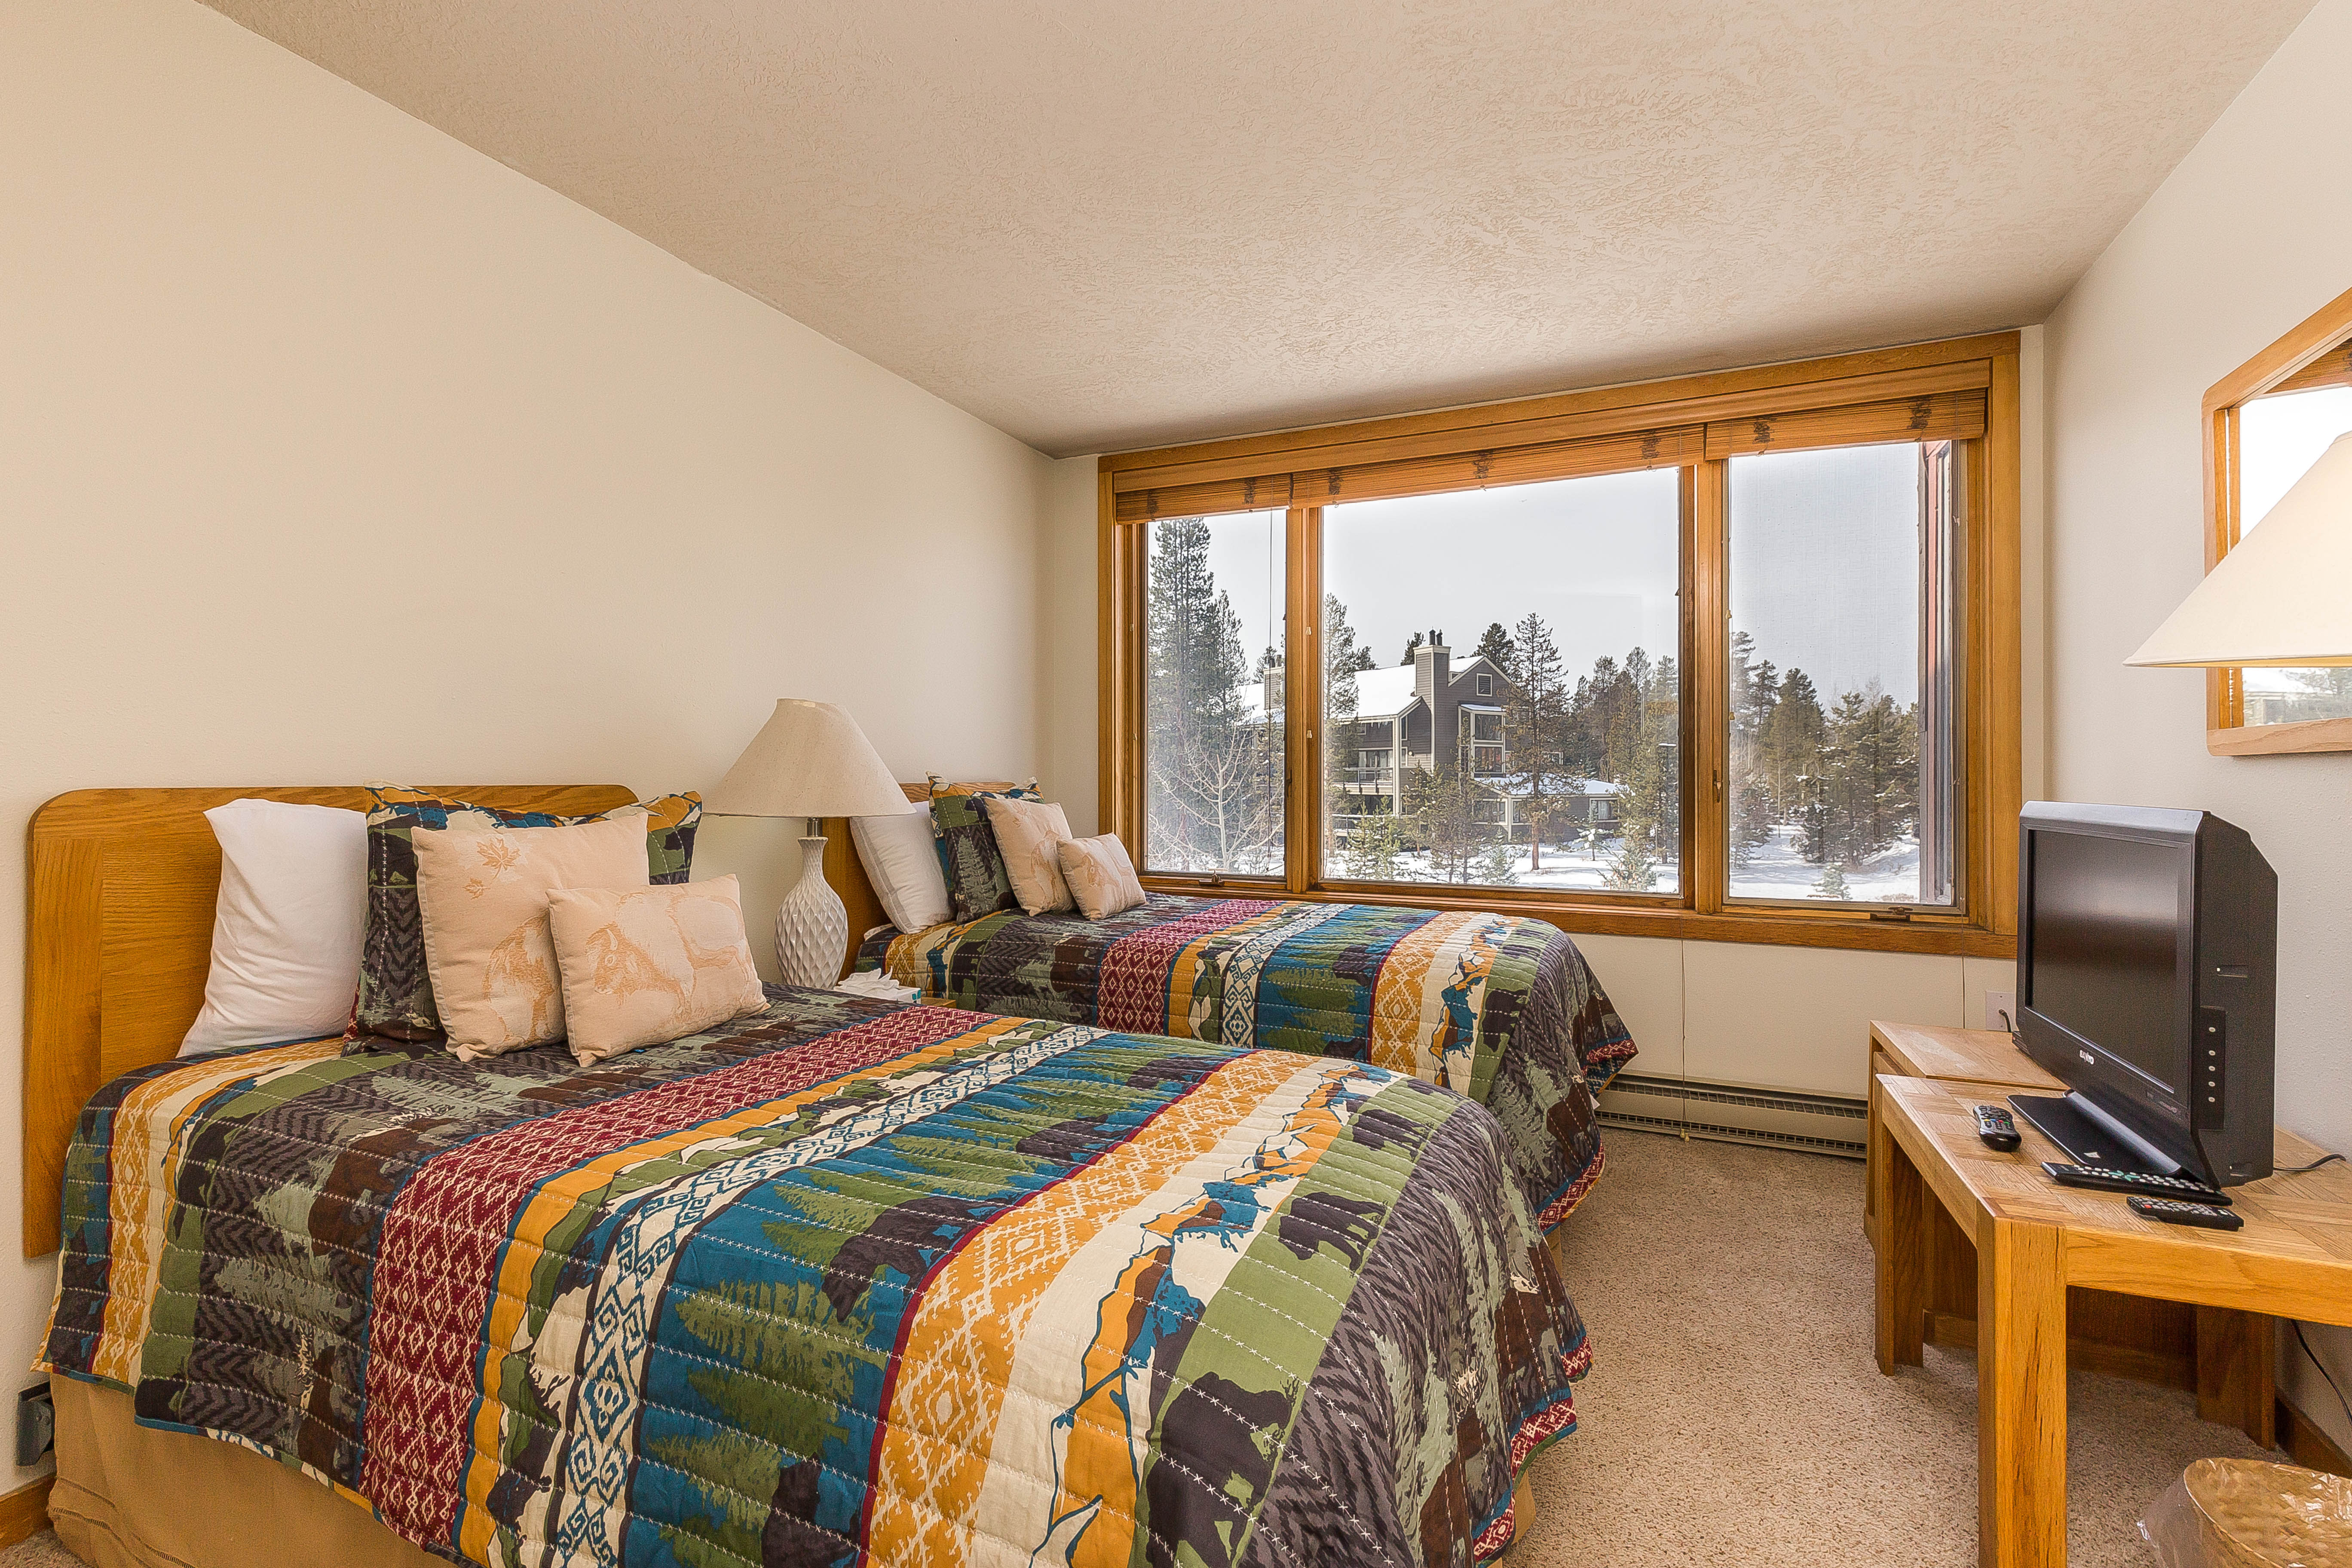 The guest bedroom features two twin-sized beds, a flat screen TV and beautiful views through the picture frame windows.